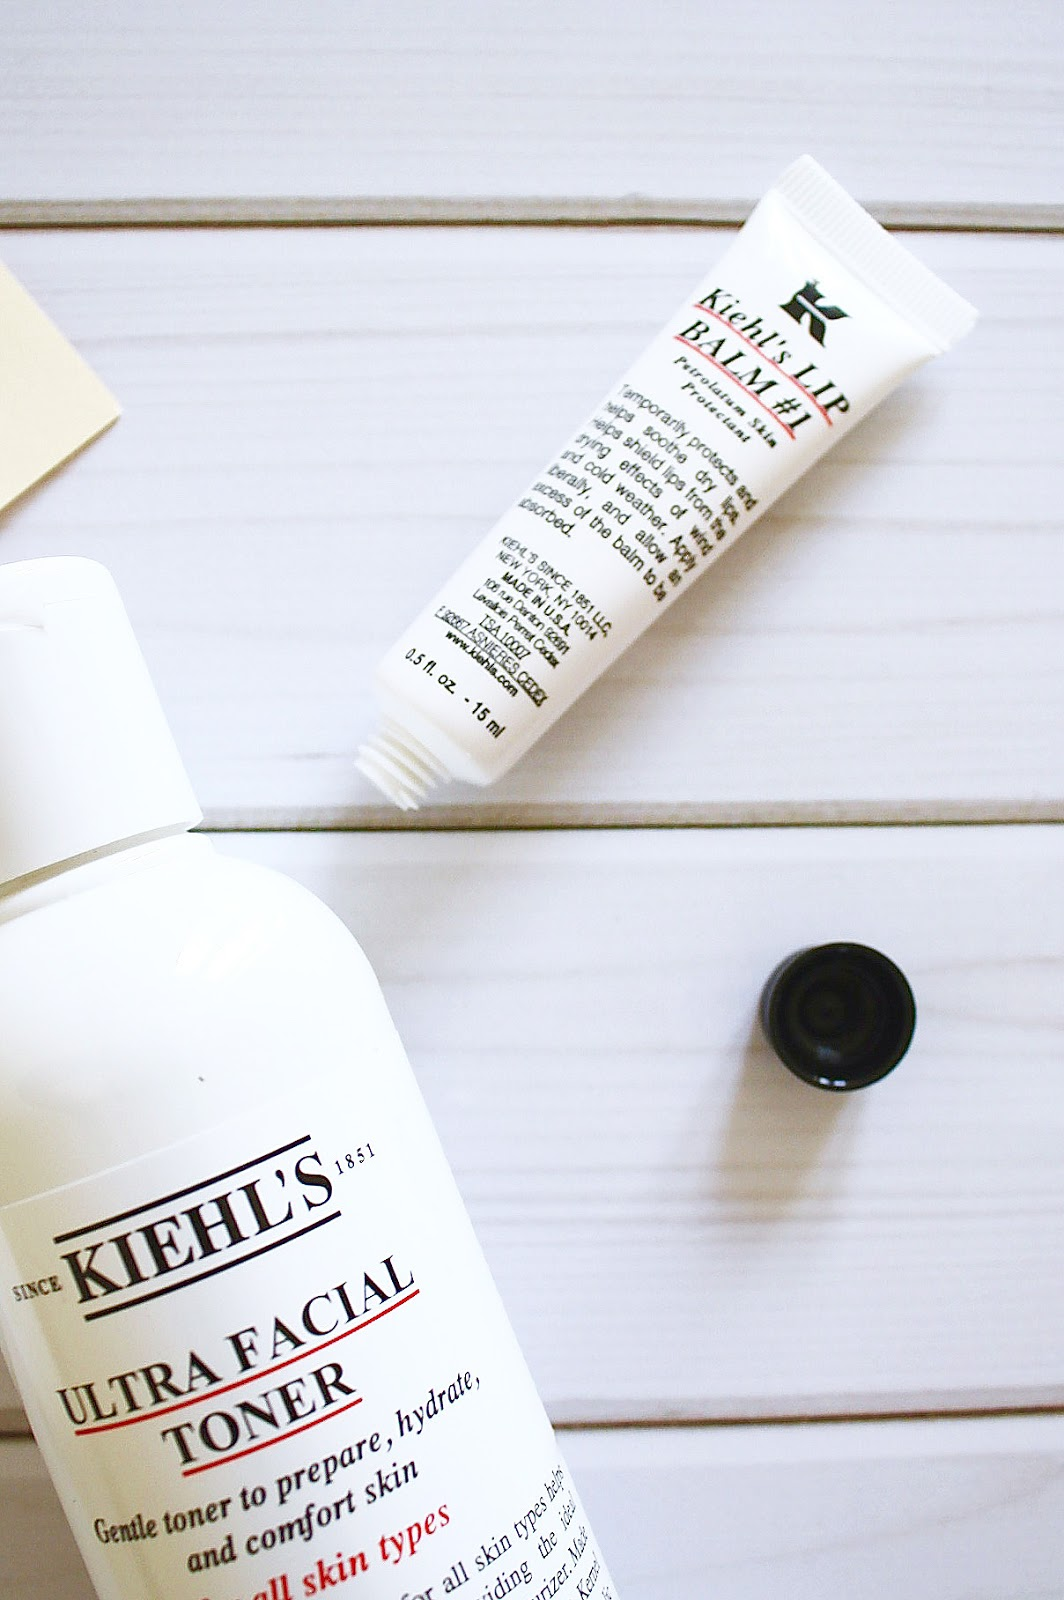 Kiehls Skincare Routine Review